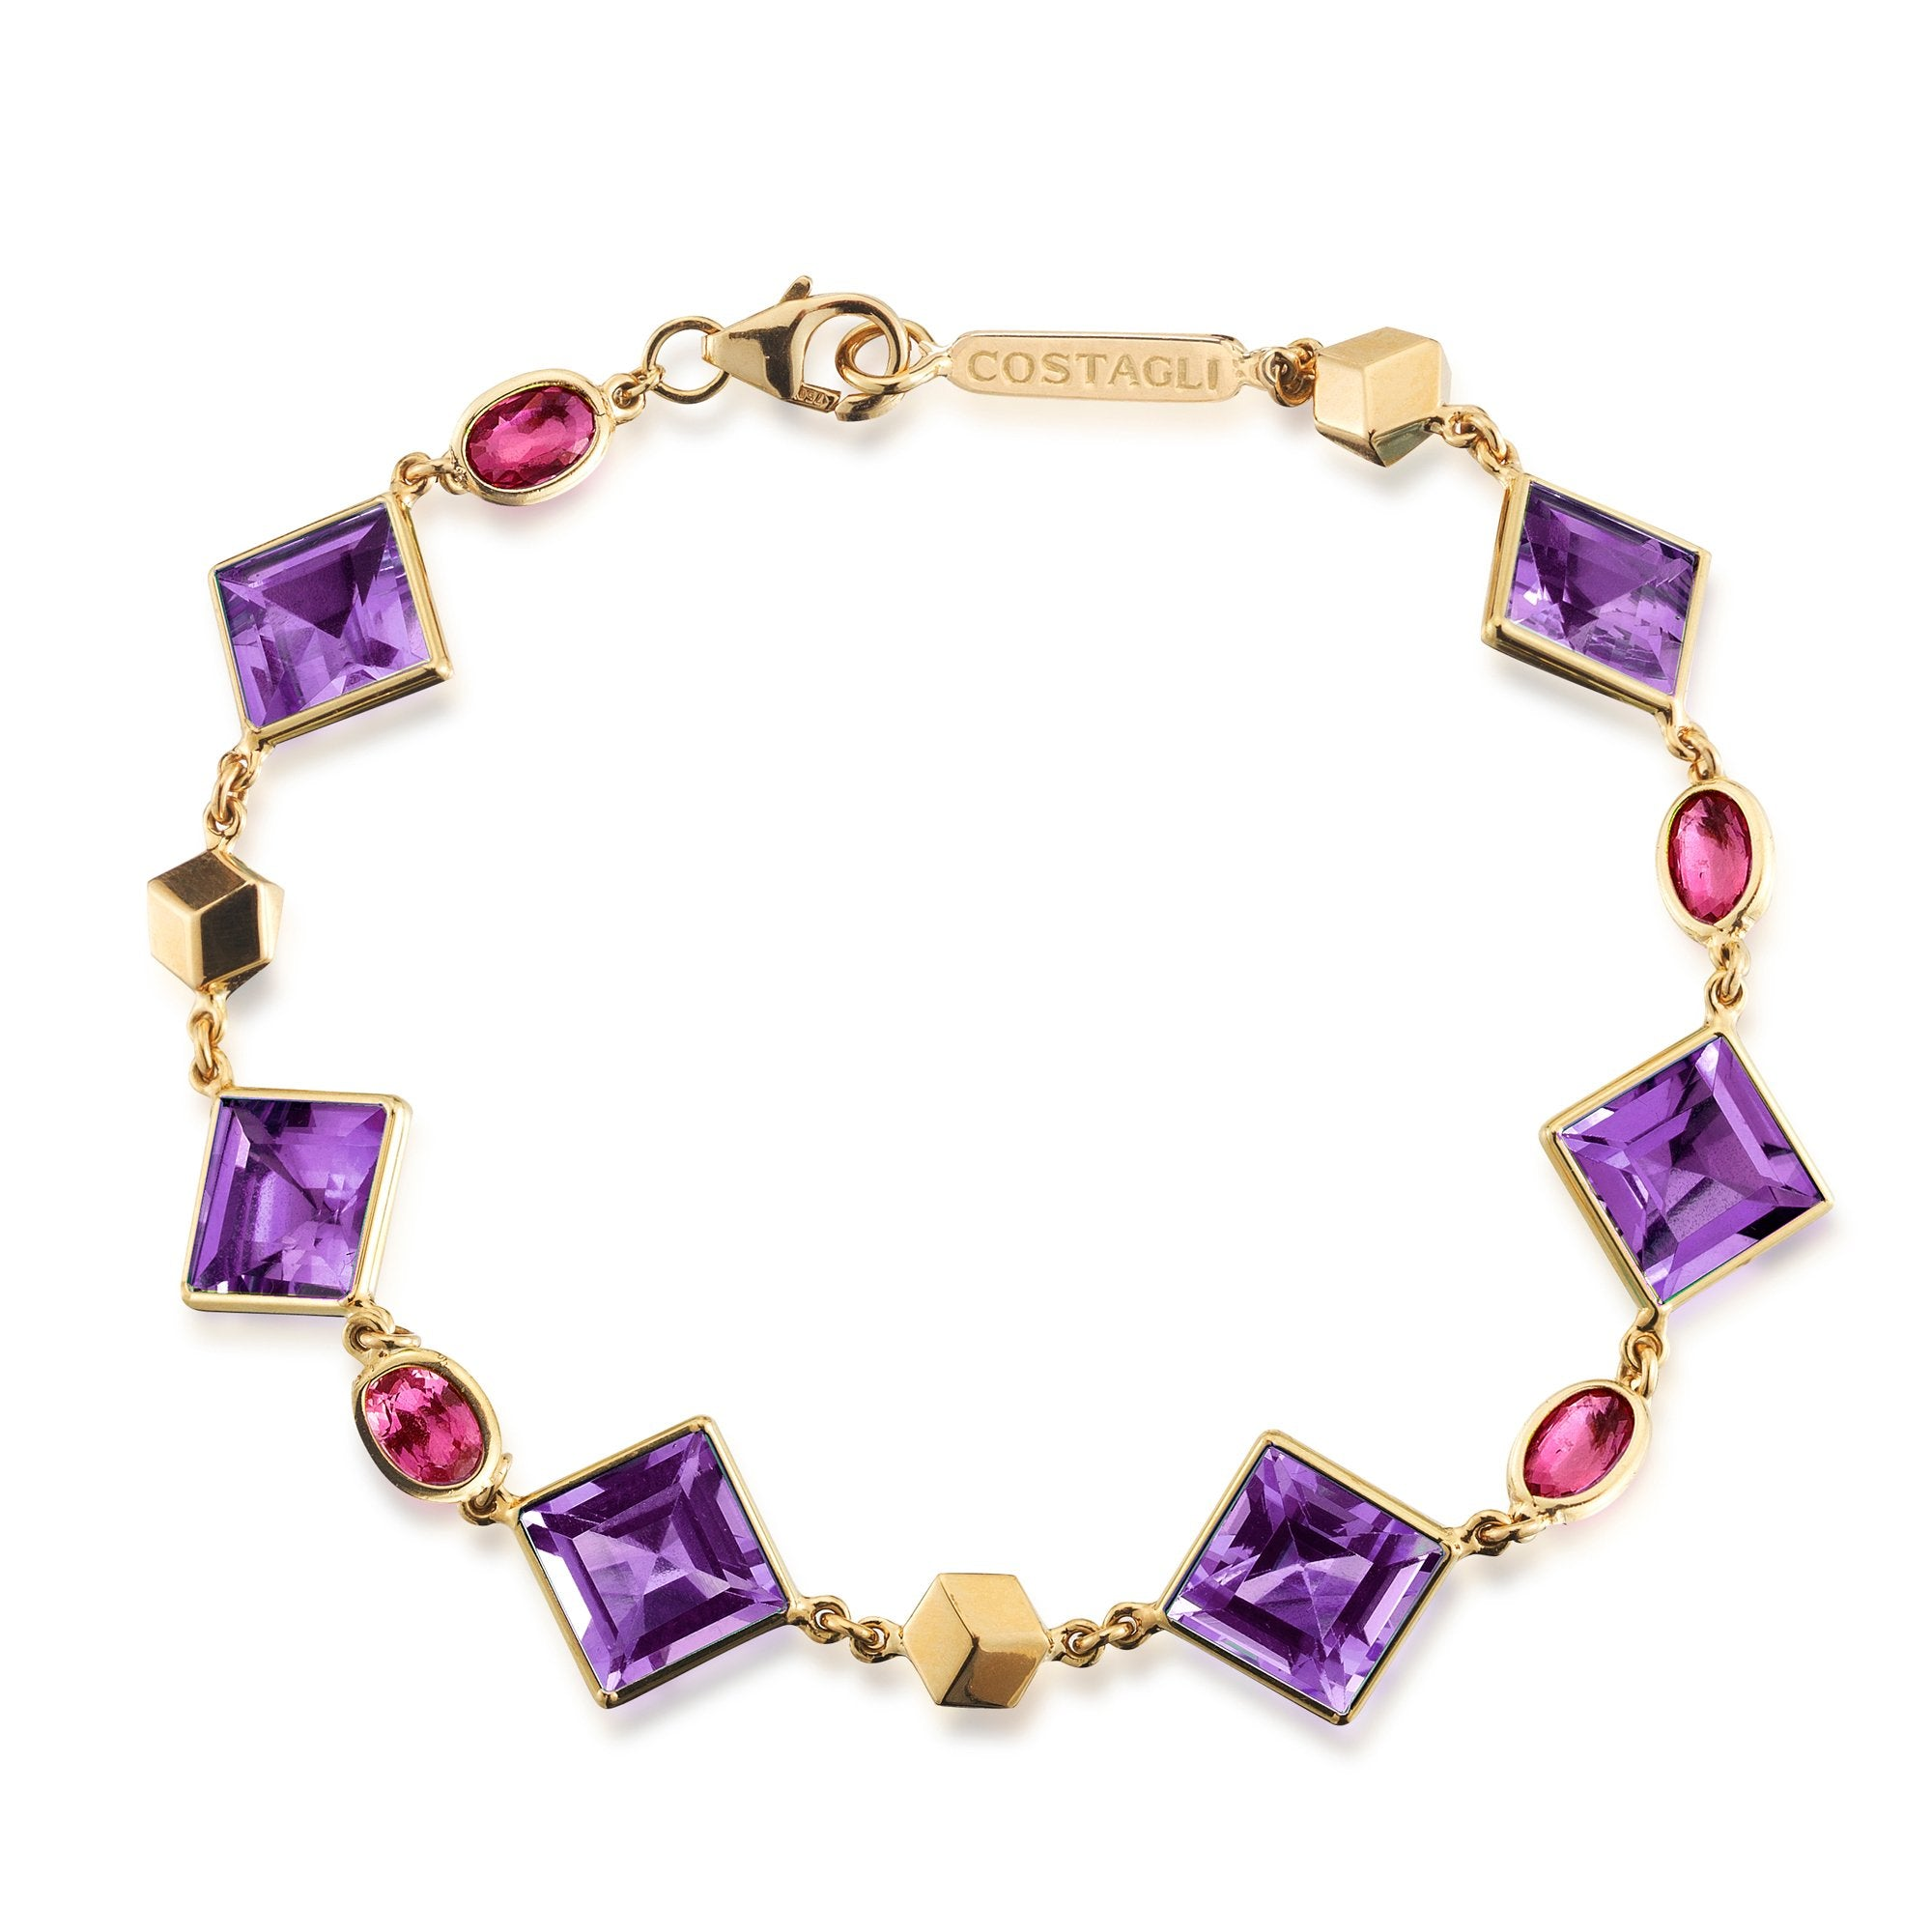 Amethyst and Ruby 'Florentine' Bracelet - Paolo Costagli - 1